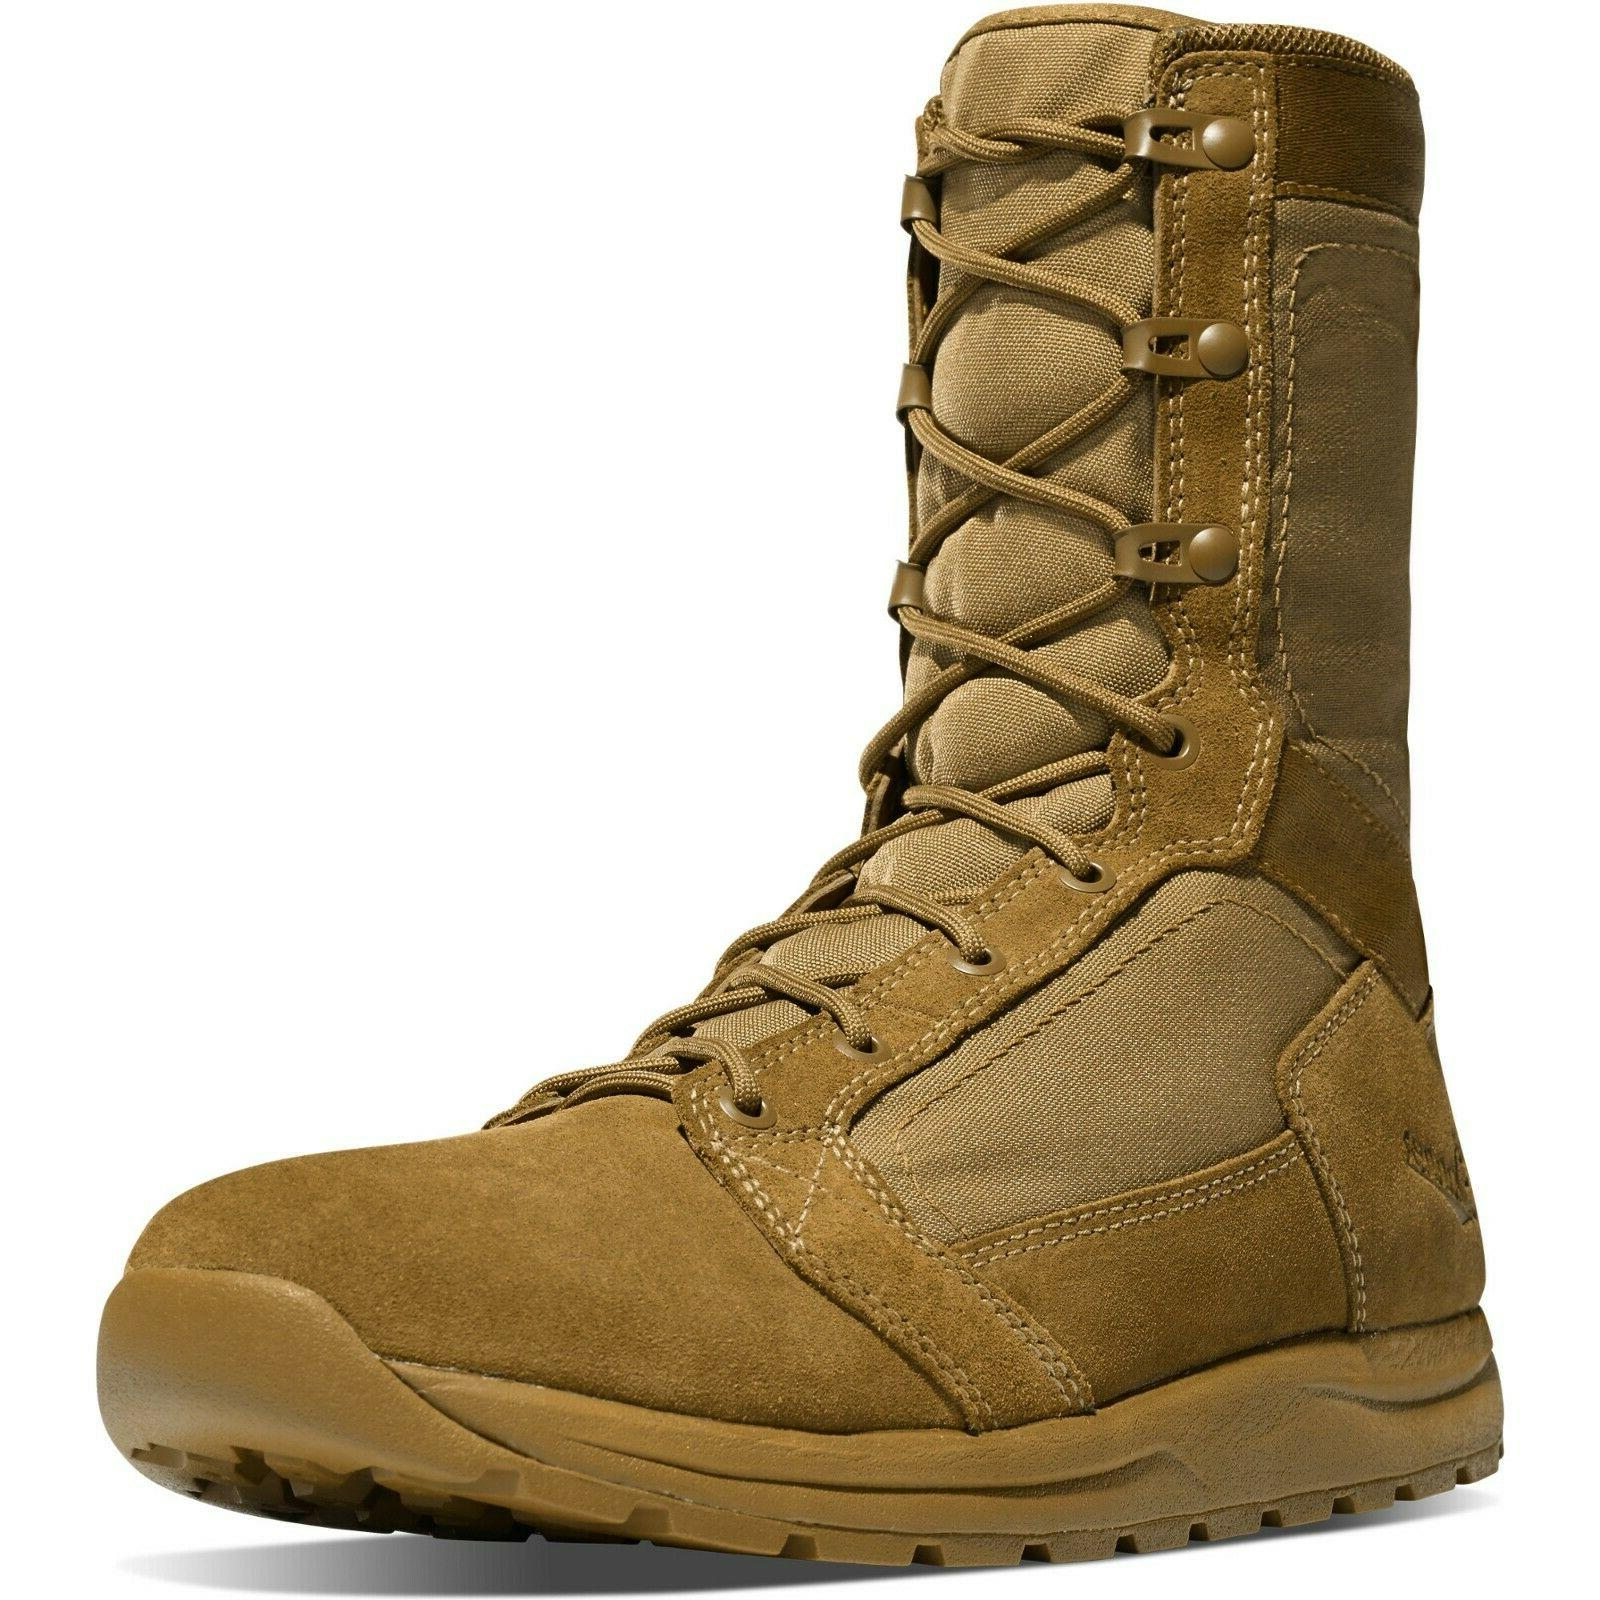 DANNER TACHYON BOOTS COYOTE ARMY OCP LIGHTWEIGHT TACTICAL